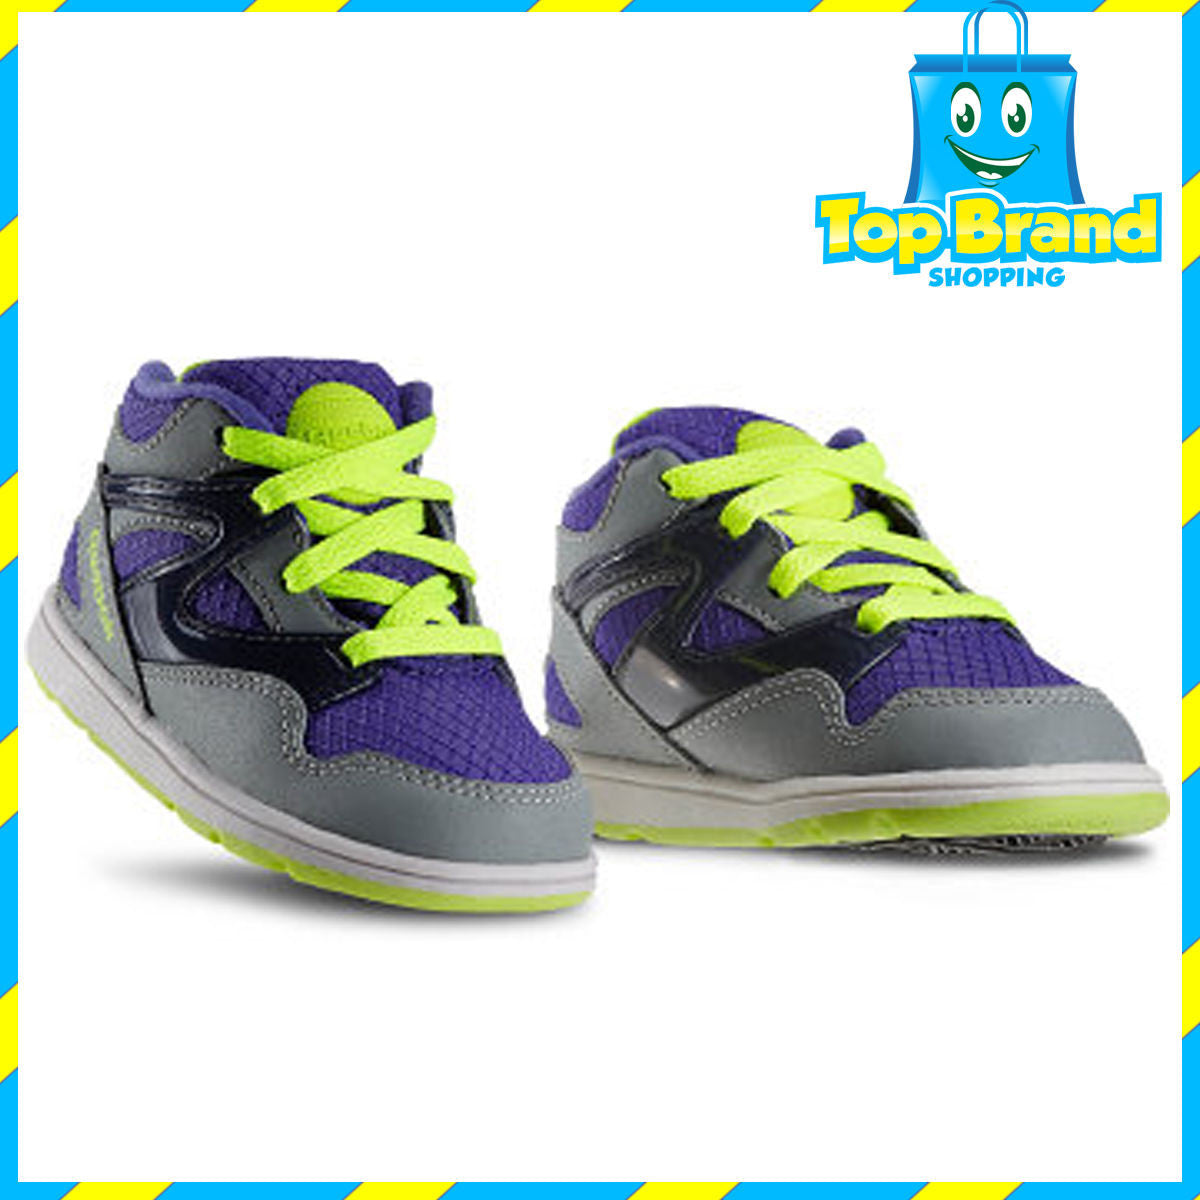 0b416879bf20 INFANT SHOES Toddler s Reebok Versa Pump Omni Lite SIZE 2 US   17 EUR - Top  brand shoes